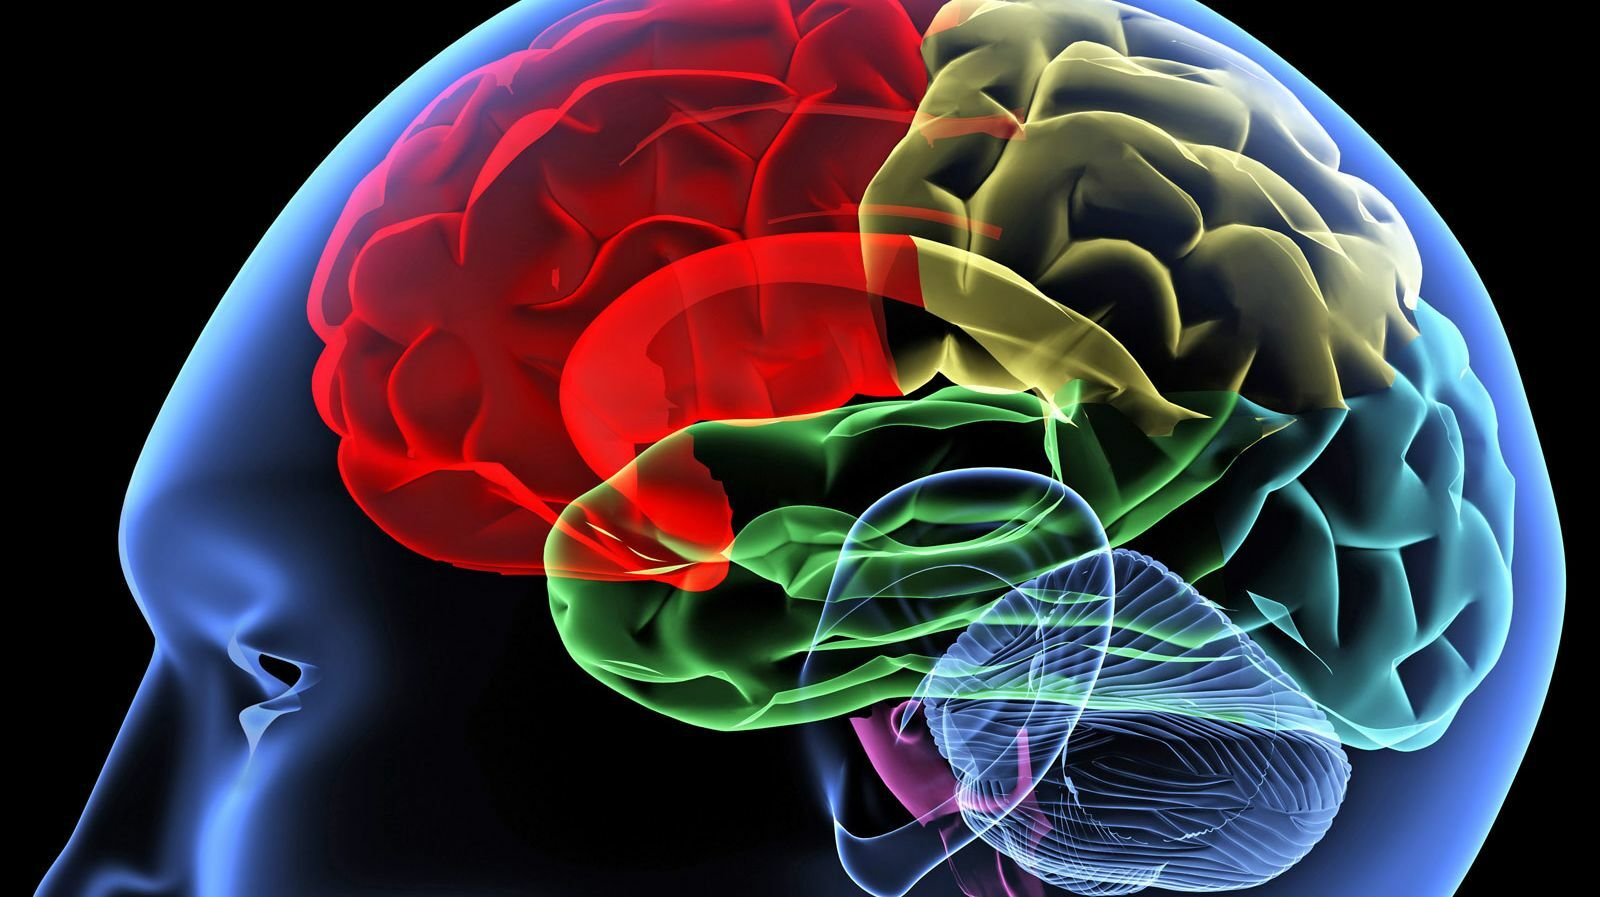 New Insights Into Women's Brain Health and Protecting The Female Brain - Online